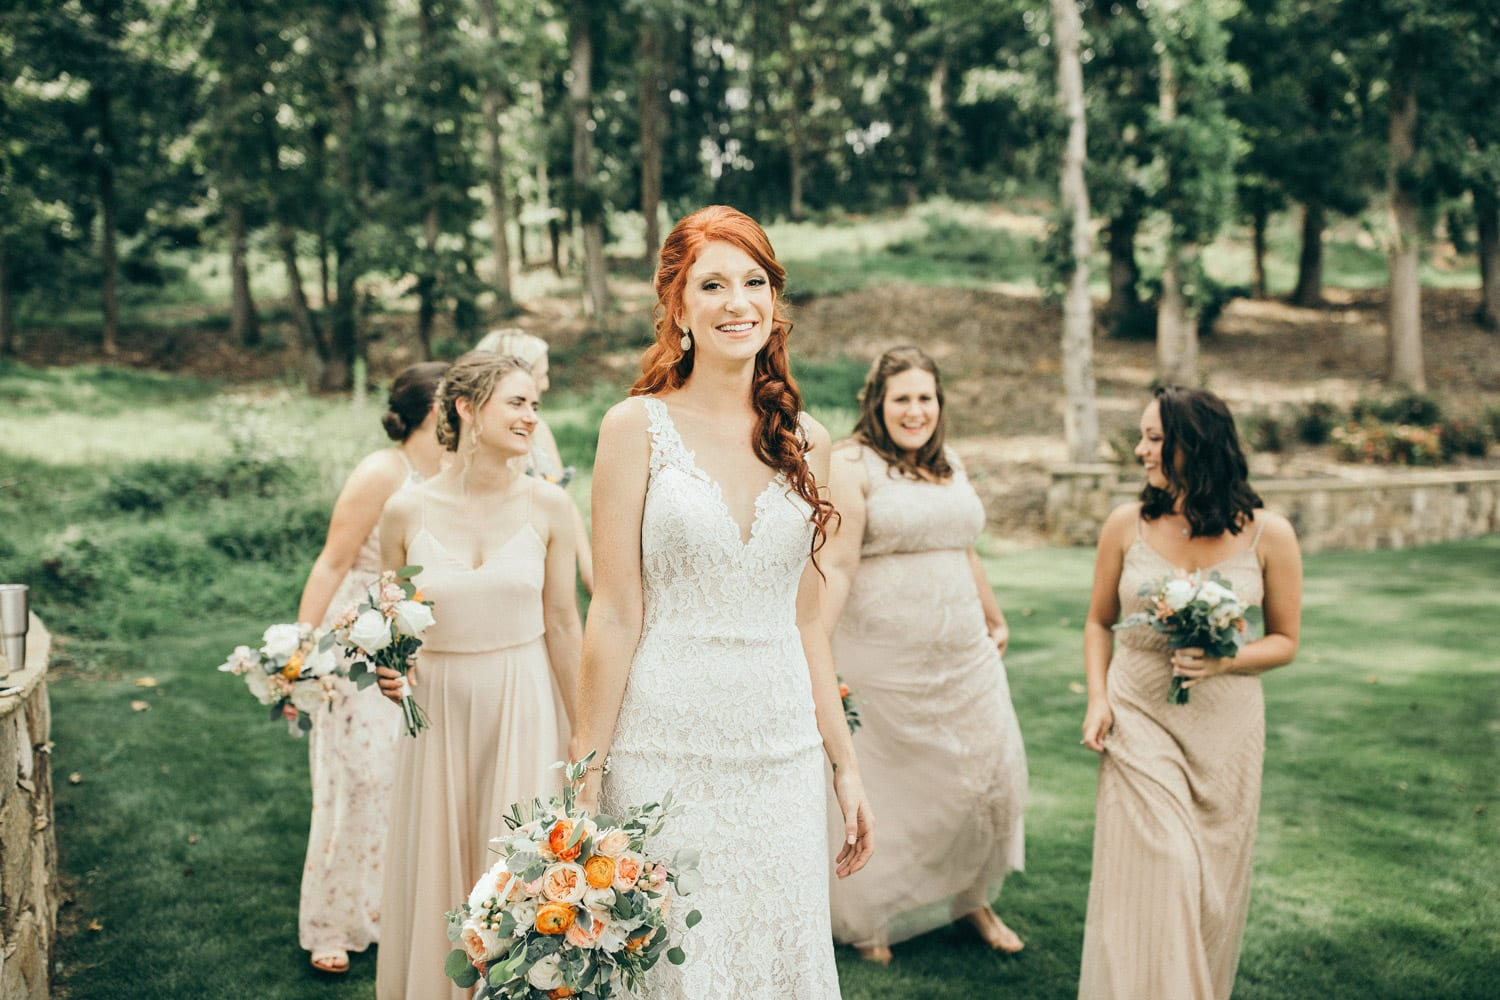 Bride and bridesmaids walking outside with flowers